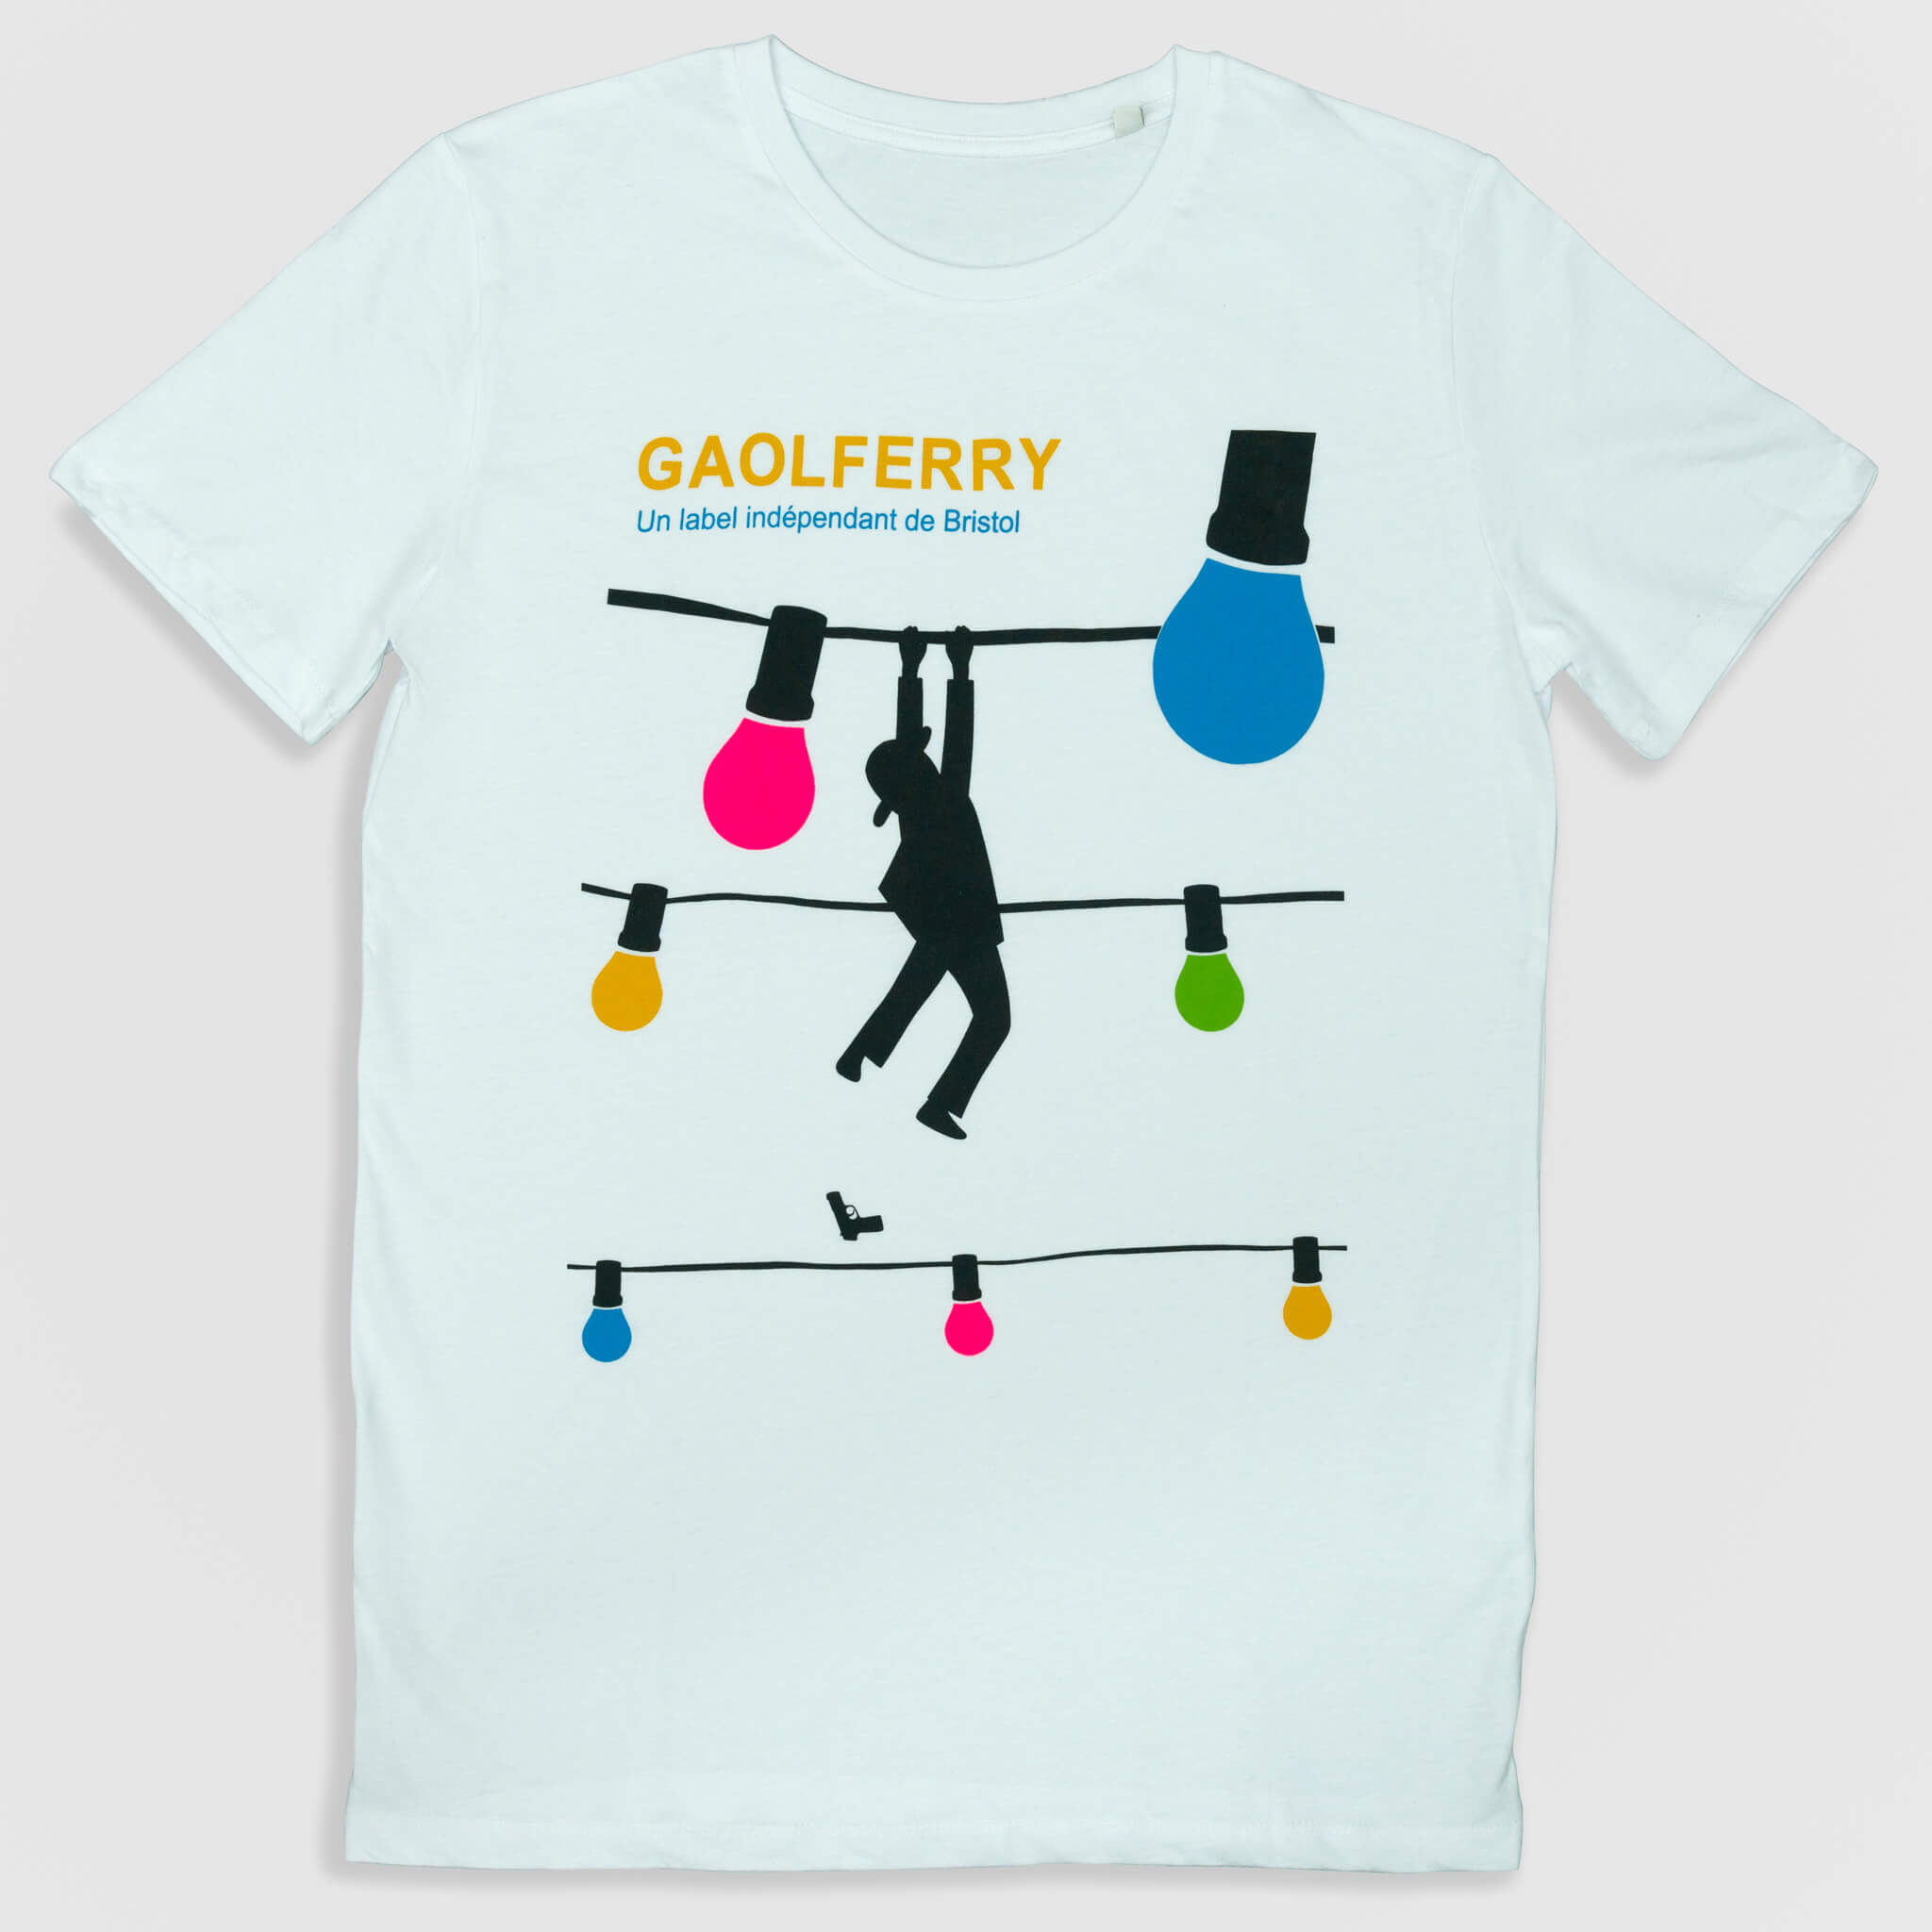 gaolferry white t-shirt with screen printed image of the ferryman hanging from a wire